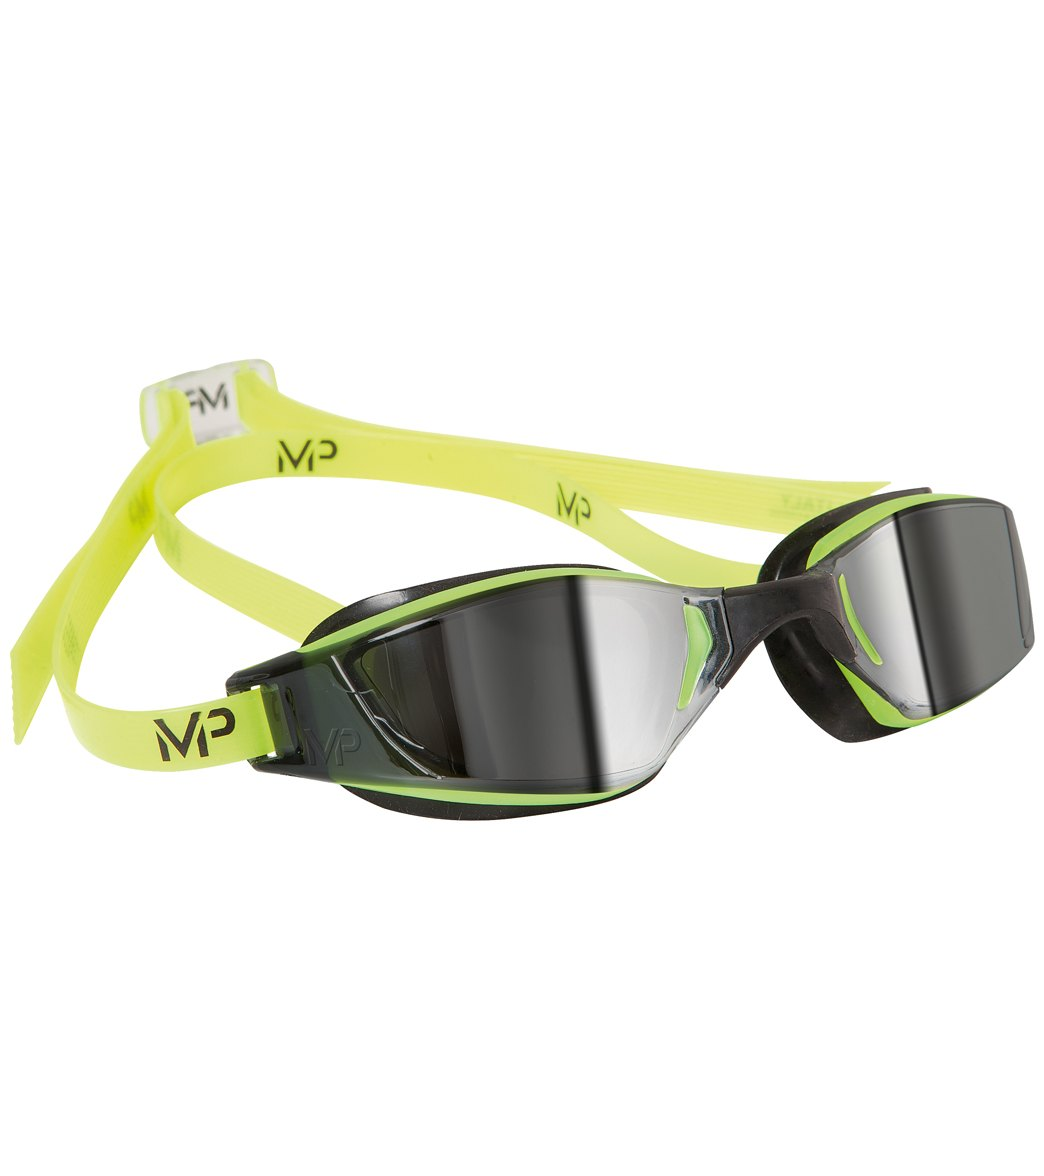 e72672d00e MP Michael Phelps Mirrored Xceed Goggle at SwimOutlet.com - Free Shipping